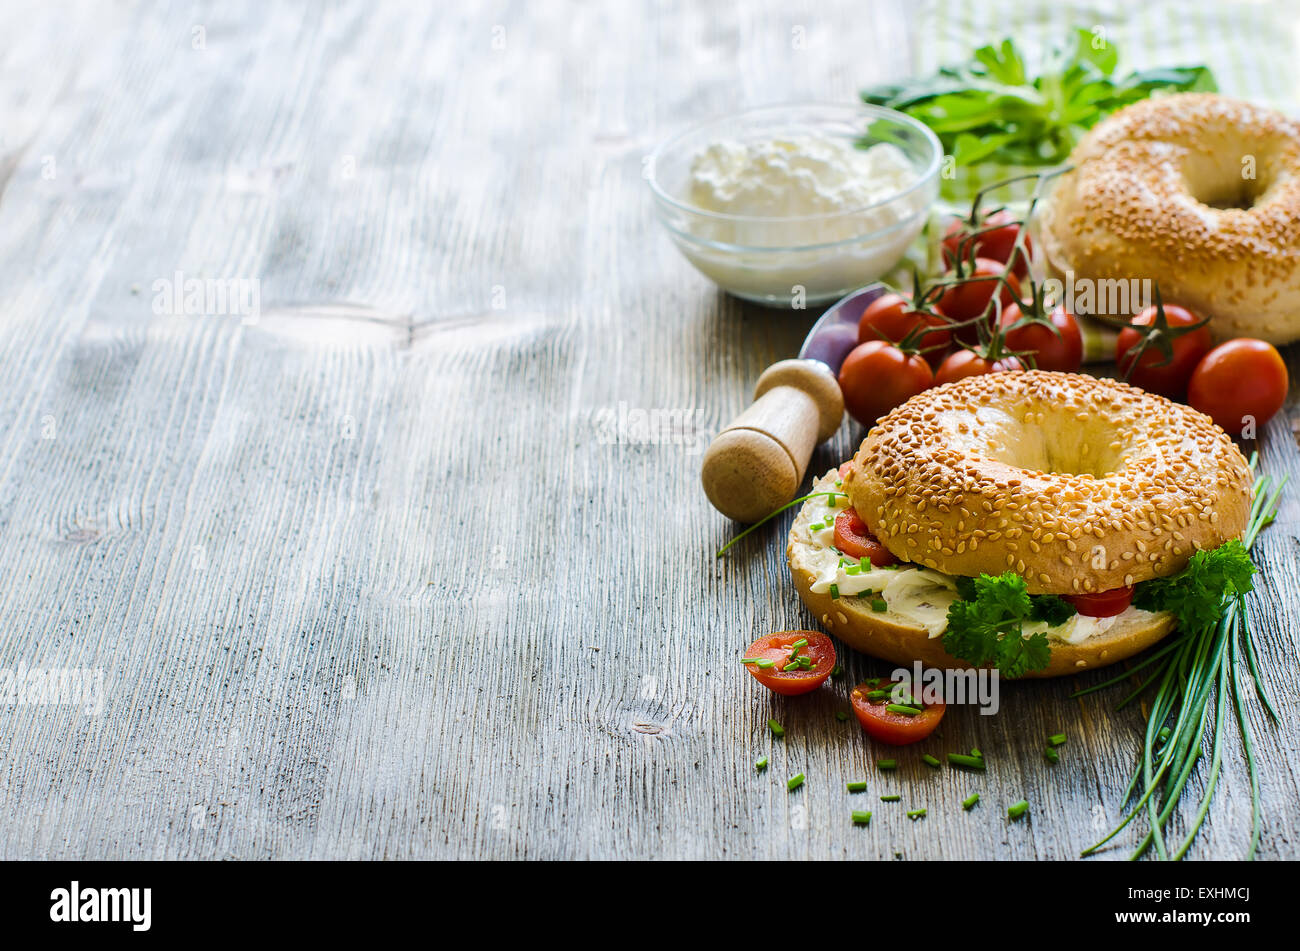 Bagels sandwiches with cream cheese, tomatoes and chives copy space - Stock Image